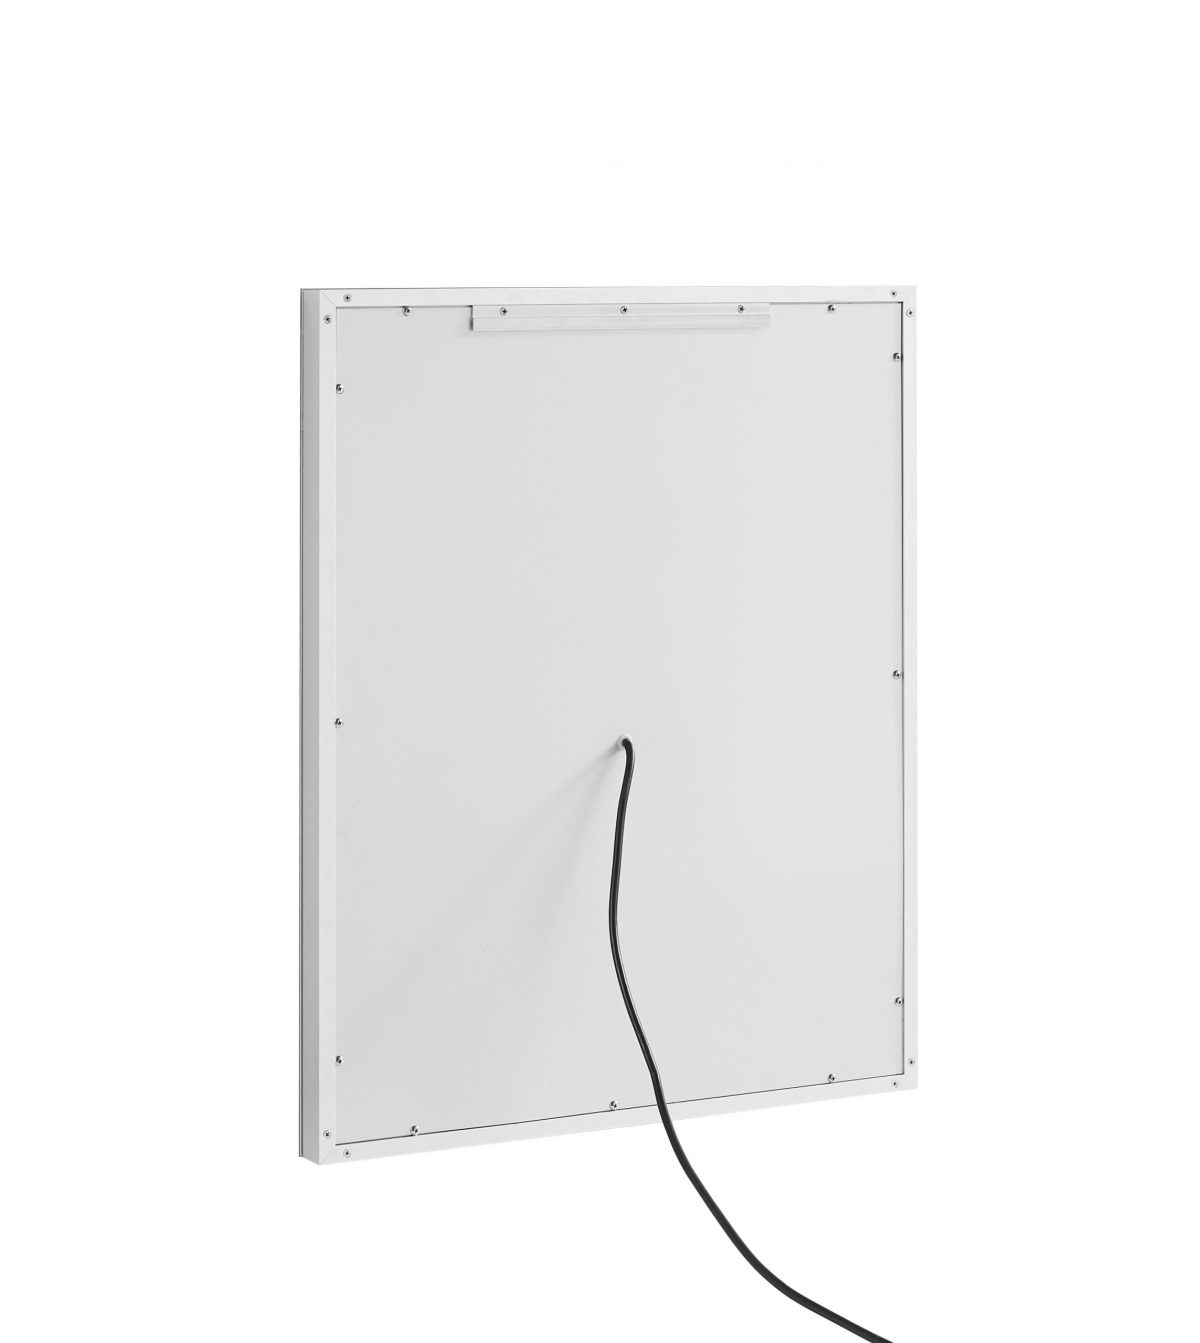 AQUADOM Daytona 36 inches x 30 inches Wall Mounted LED Lighted Silver Mirror for Bathroom